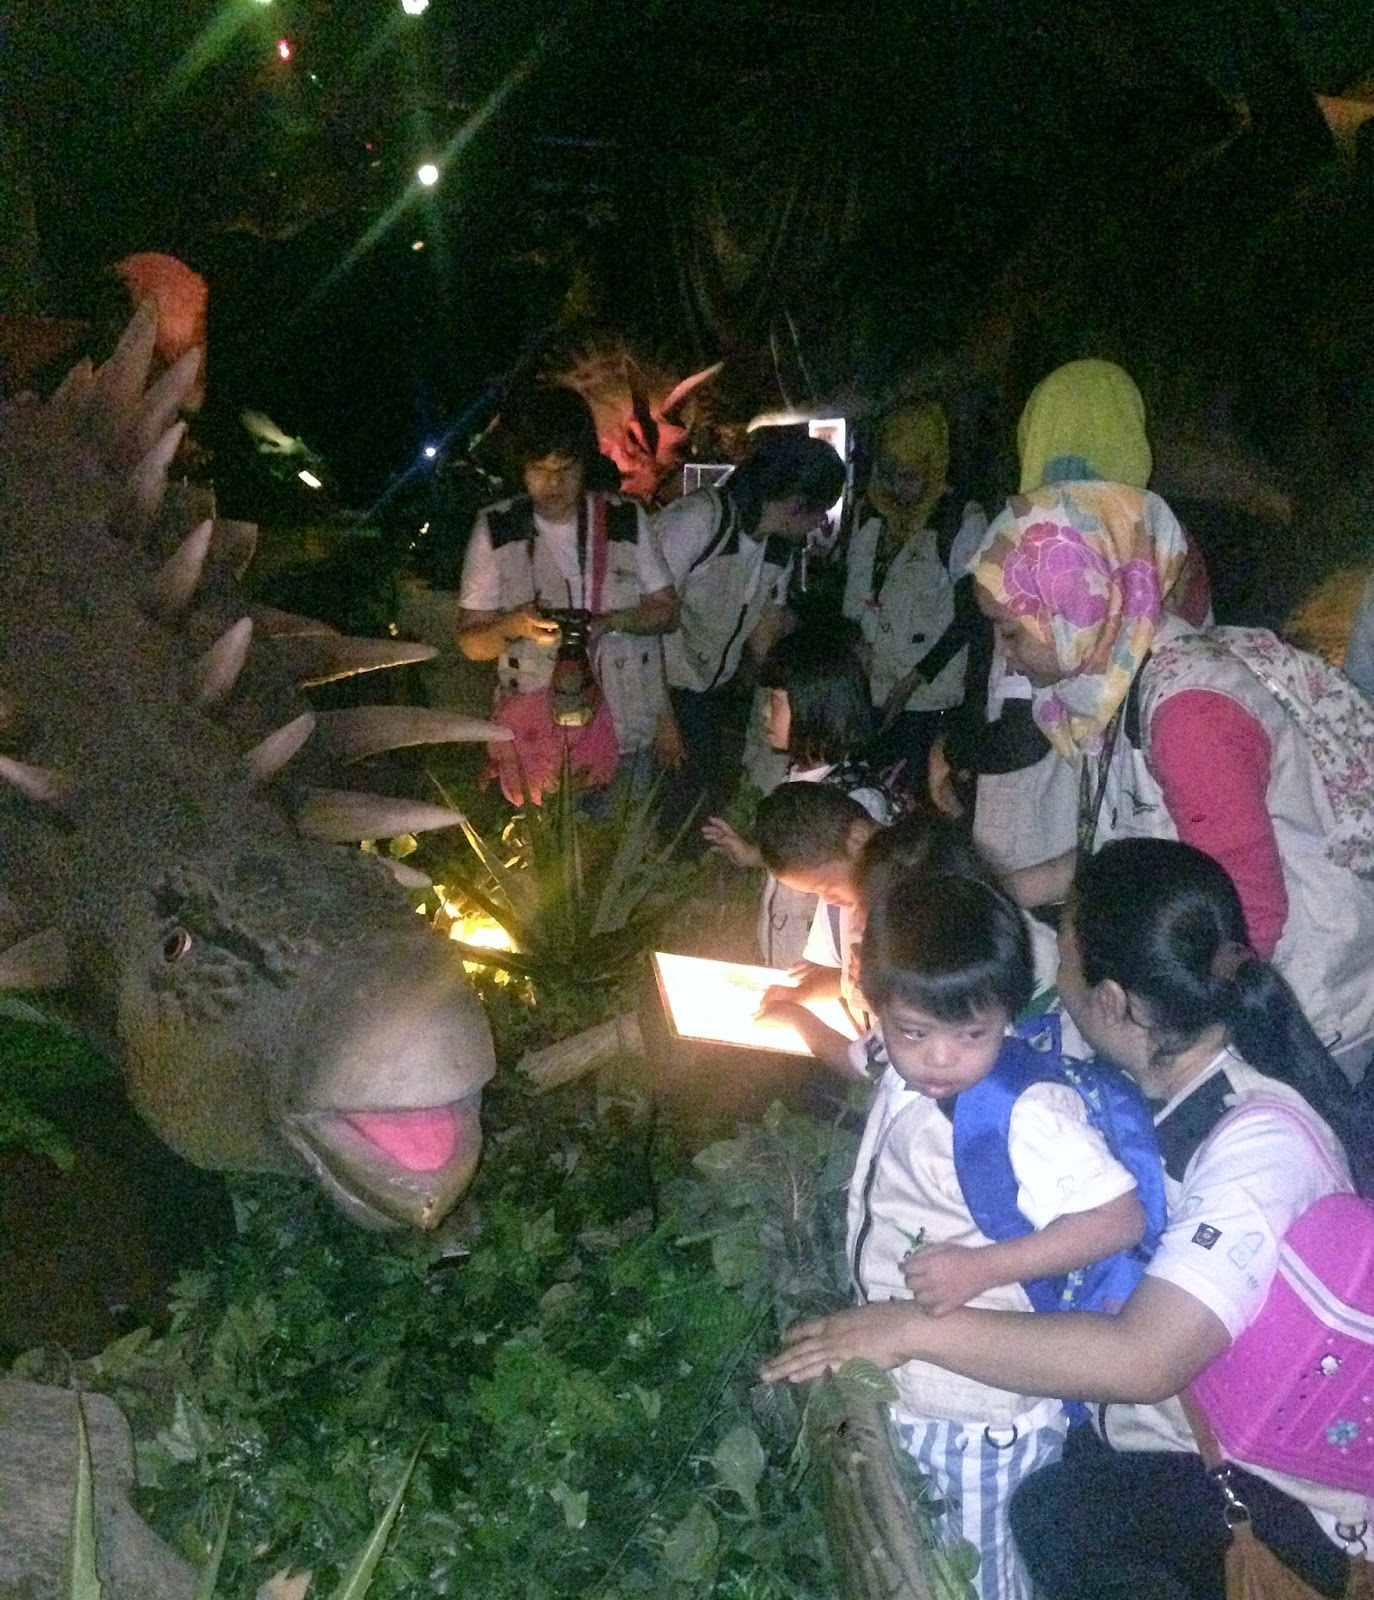 Image of: At The Exhibition The Children Were Decked In Paleontologist Vests With Radio Frequency Identification rfid Tags And Maps In Hand To Navigate The Dino Malaysian Foodie Dinoscovery By Dinosaurs Live Hosts Special Trip Back In Time For